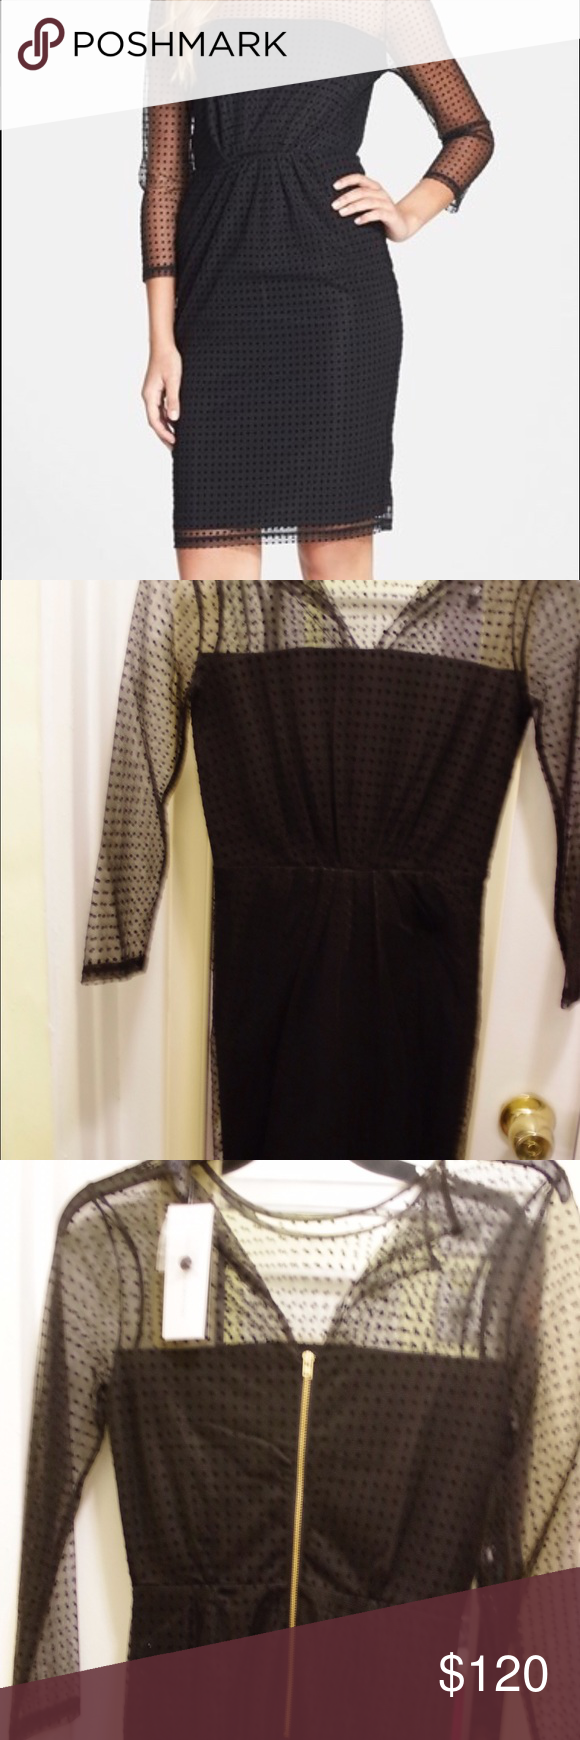 NWT French Connection cocktail dress NWT